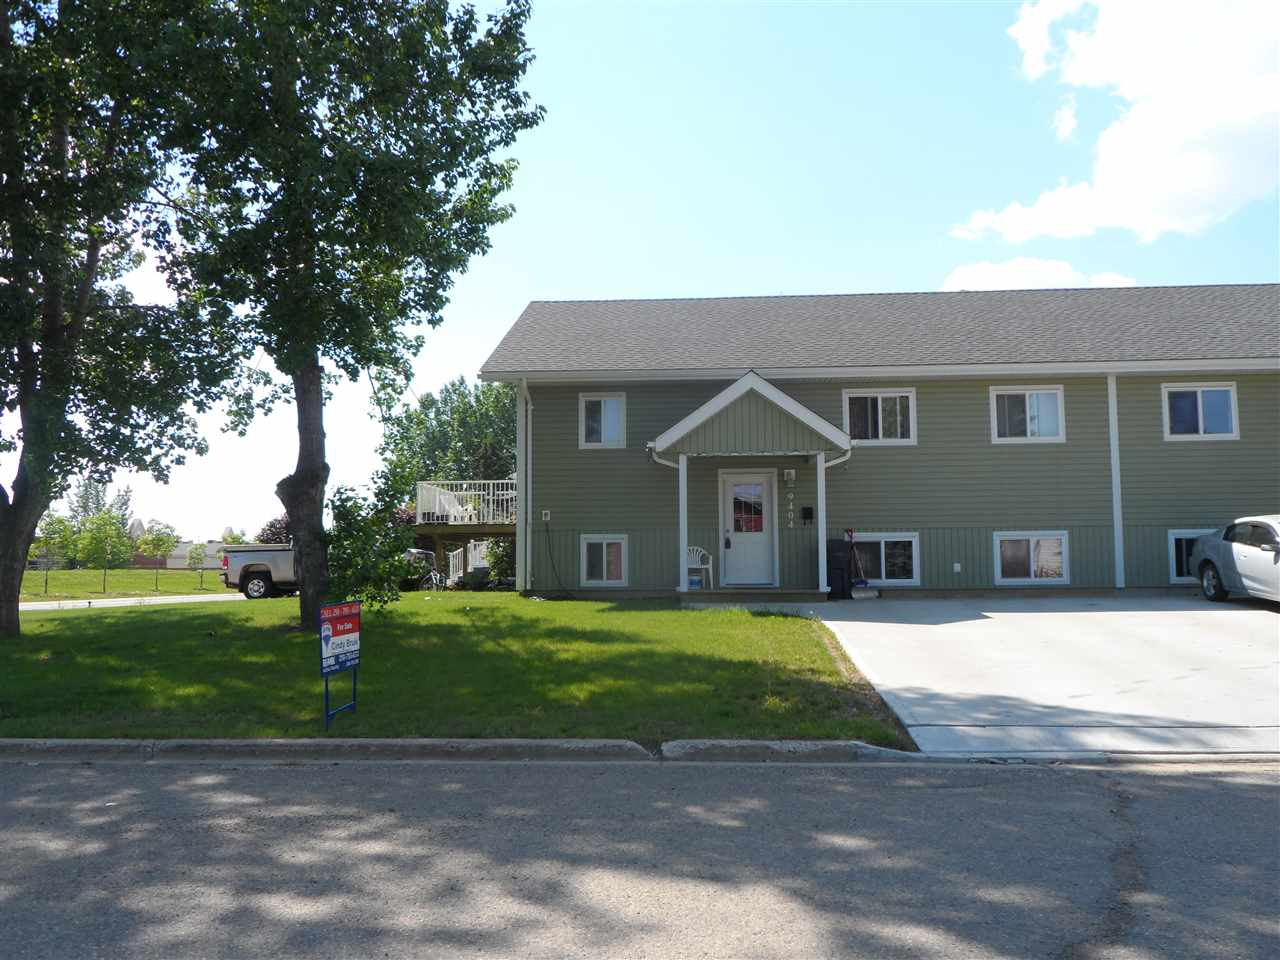 Main Photo: 9404 94A Street in Fort St. John: Fort St. John - City SE House 1/2 Duplex for sale (Fort St. John (Zone 60))  : MLS®# R2014844